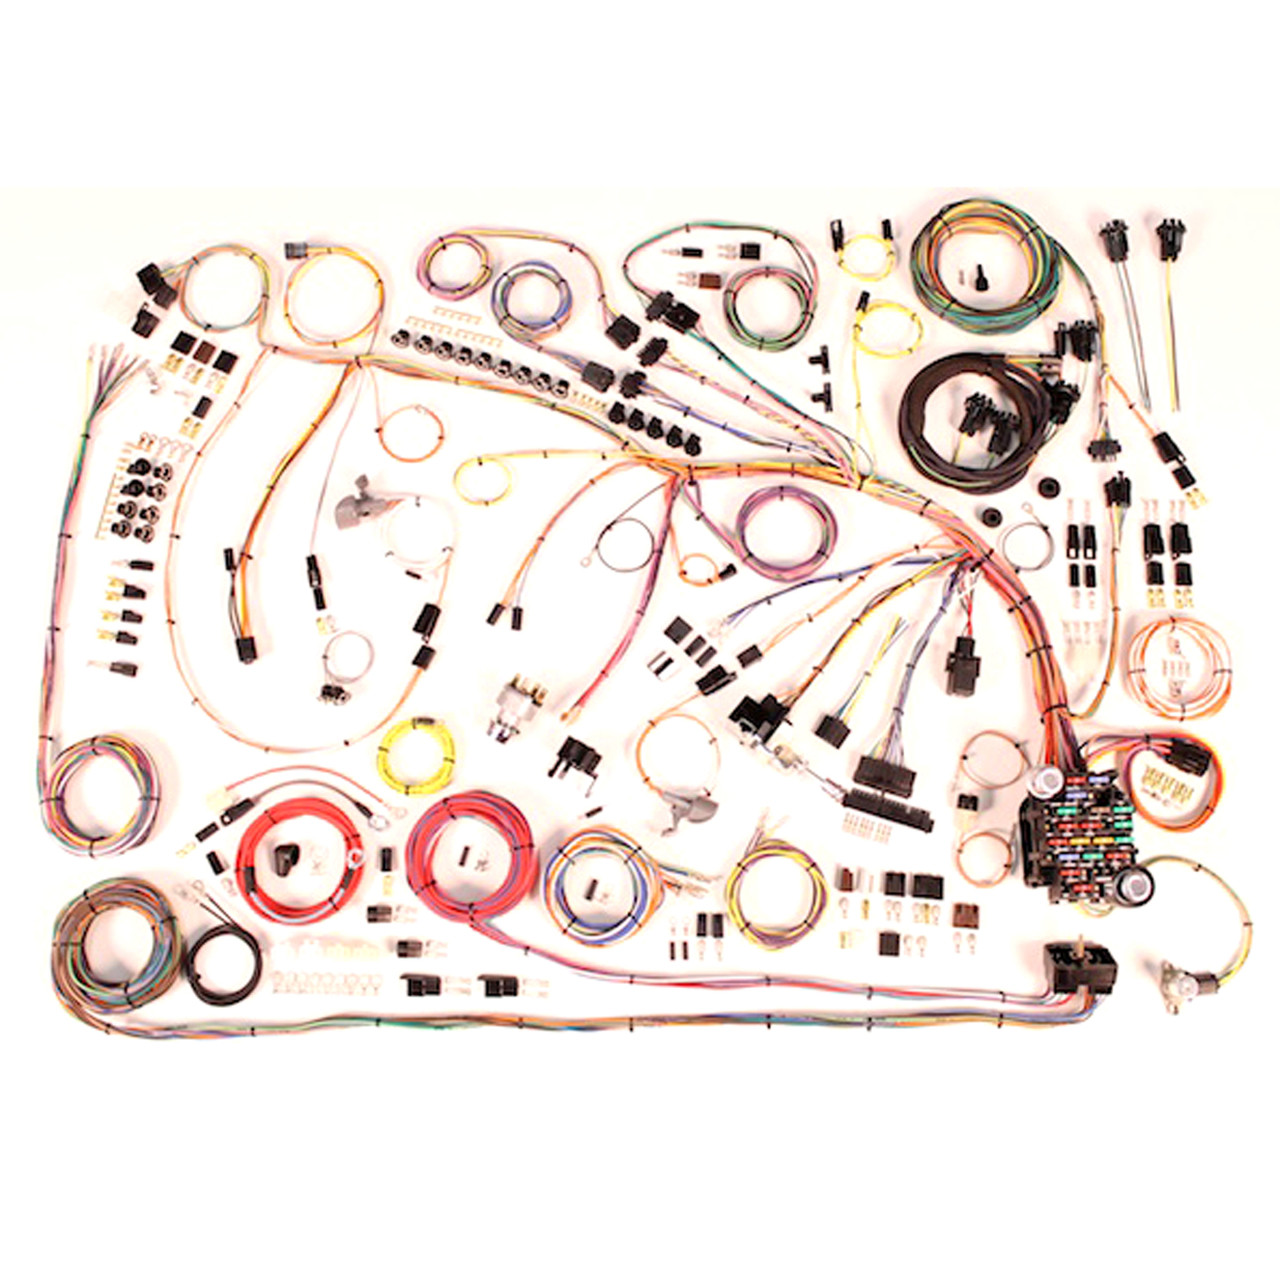 medium resolution of american autowire 1965 chevrolet impala classic update complete wiring harness for 1965 chevy impala